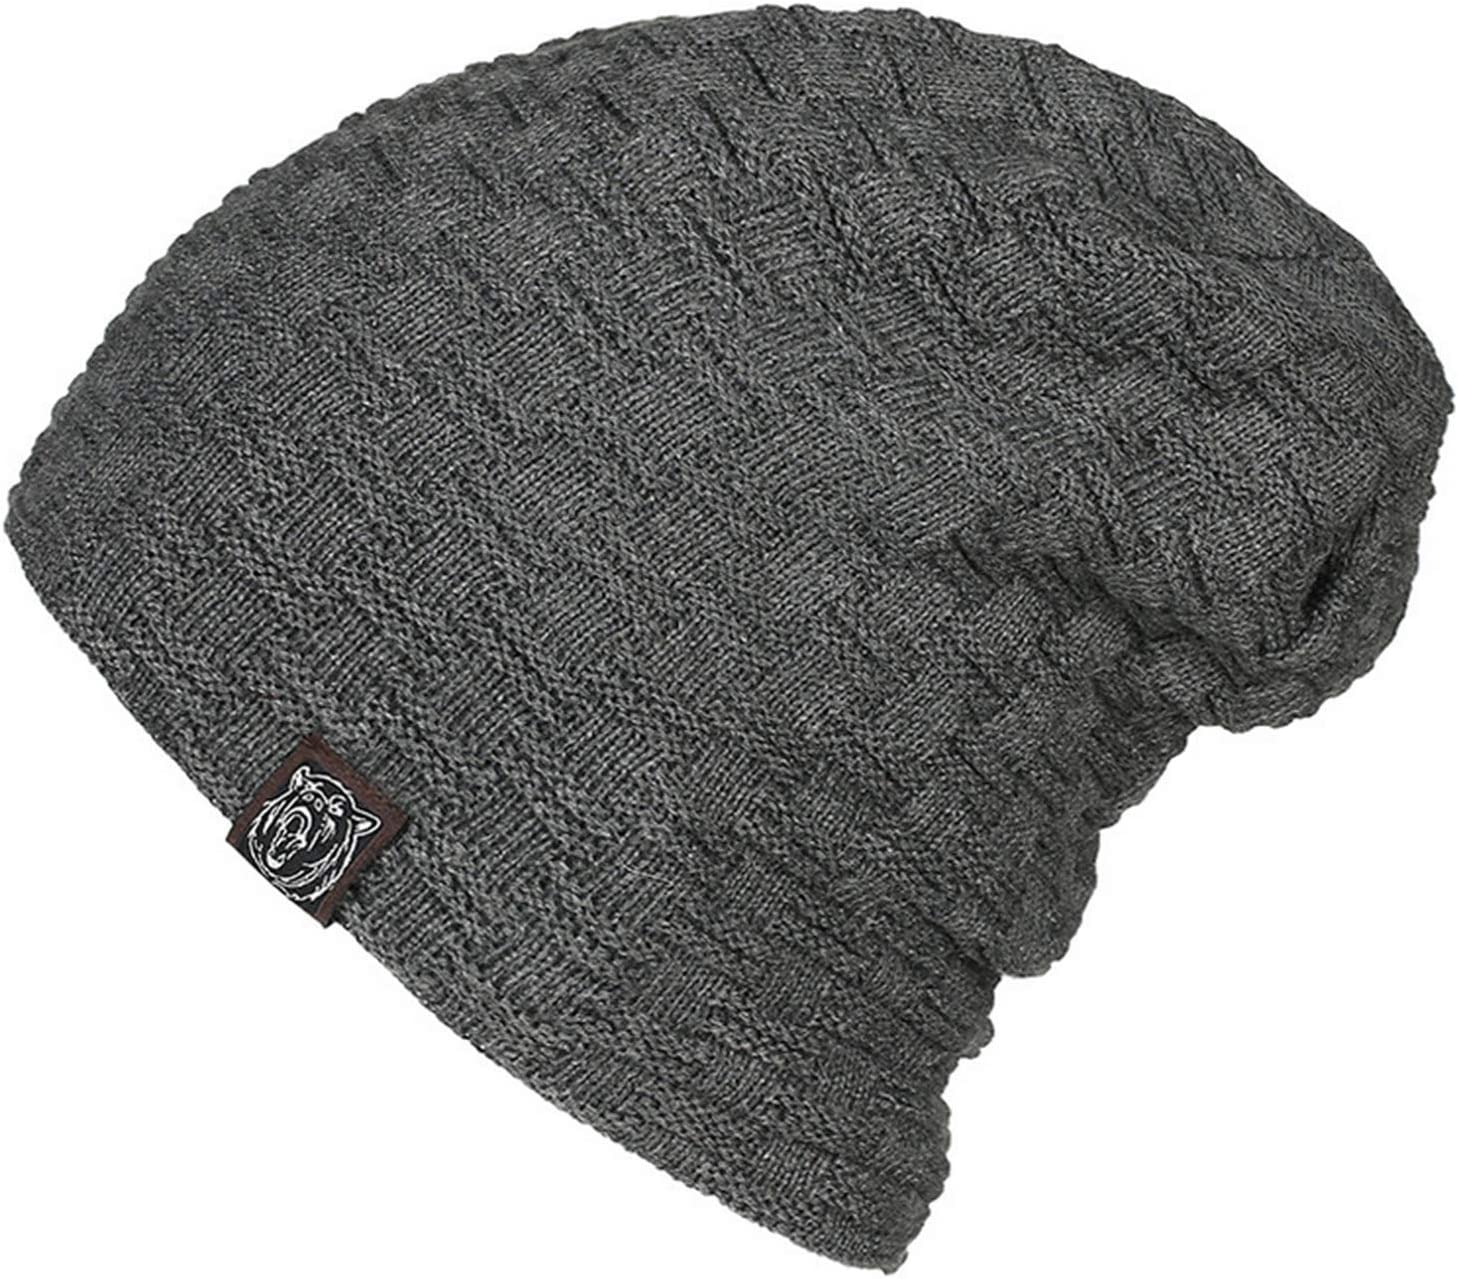 Superora Womens Hat Beanie Cap Winter Knitted Solid Plain Colour Soft Warm Stretchy